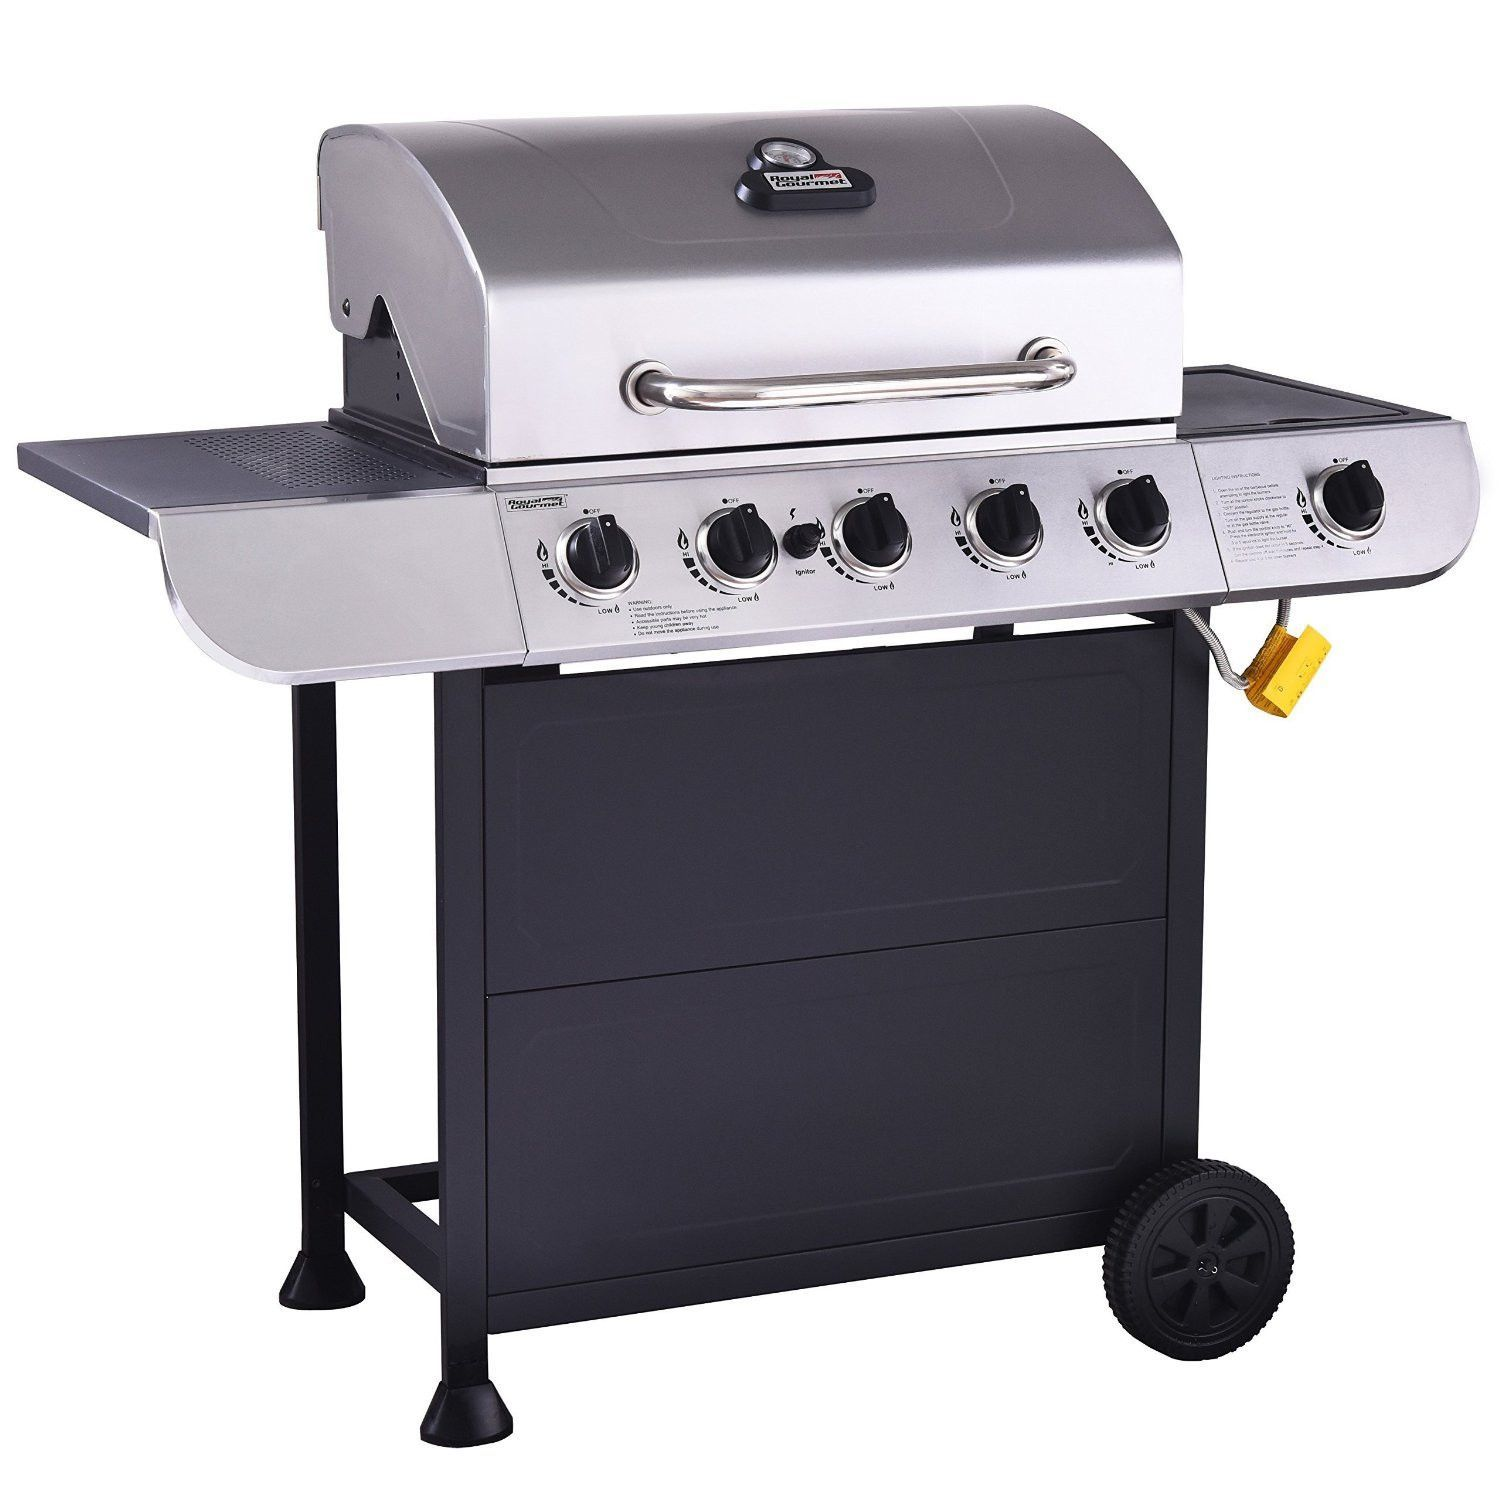 RoyalGourmet Classic 5 Burner Propane Gas Grill with Side Burner New